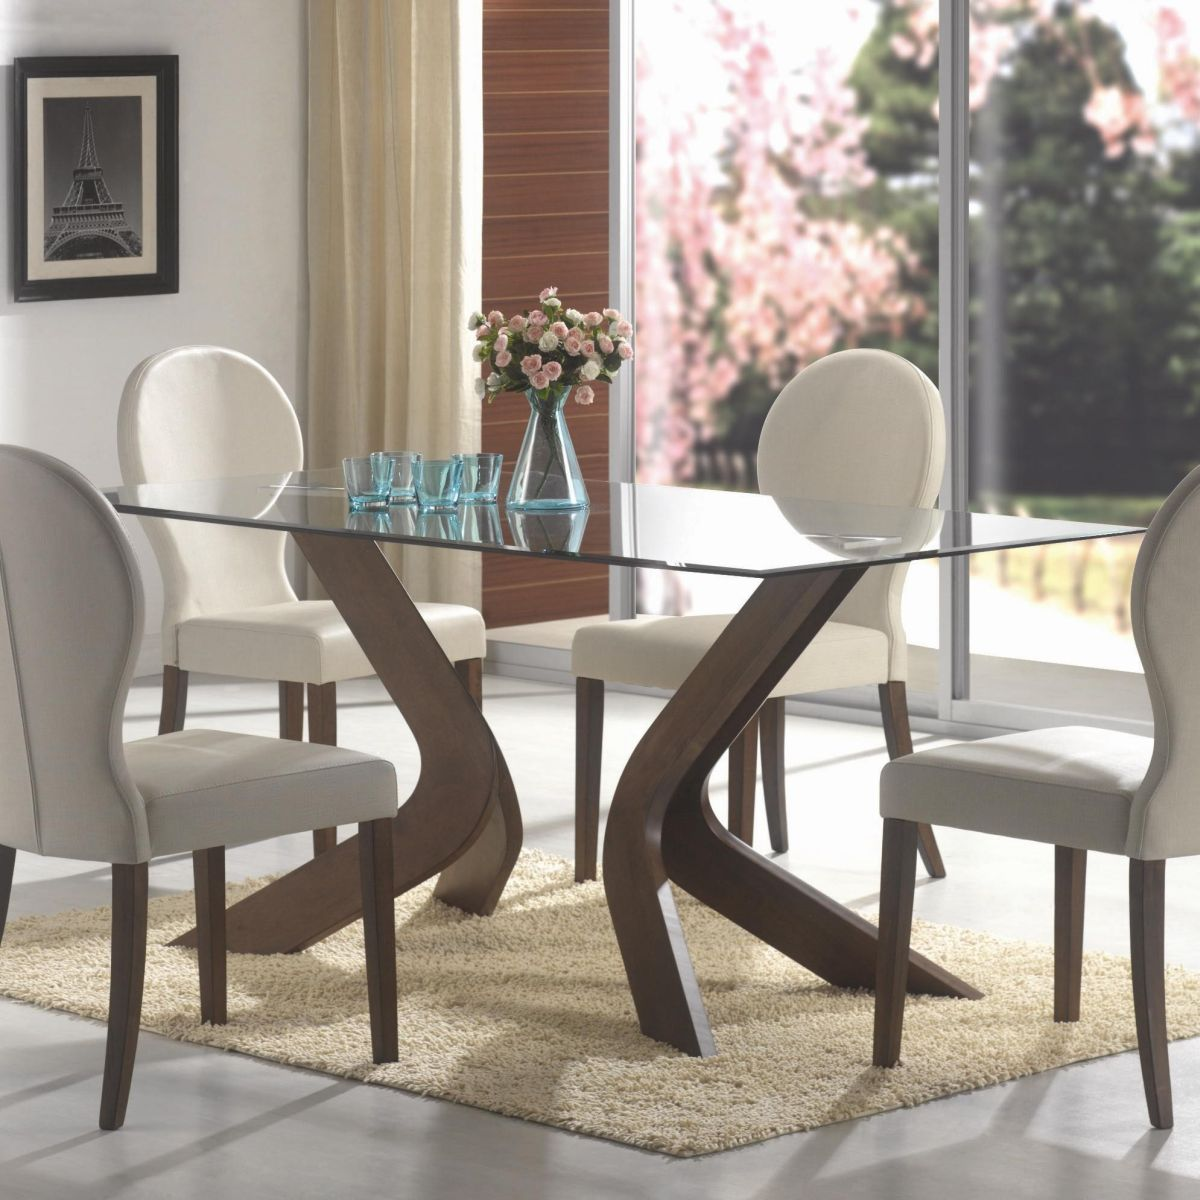 Rectangle dining table design - Oval Back Dining Chairs And Glass Top Table